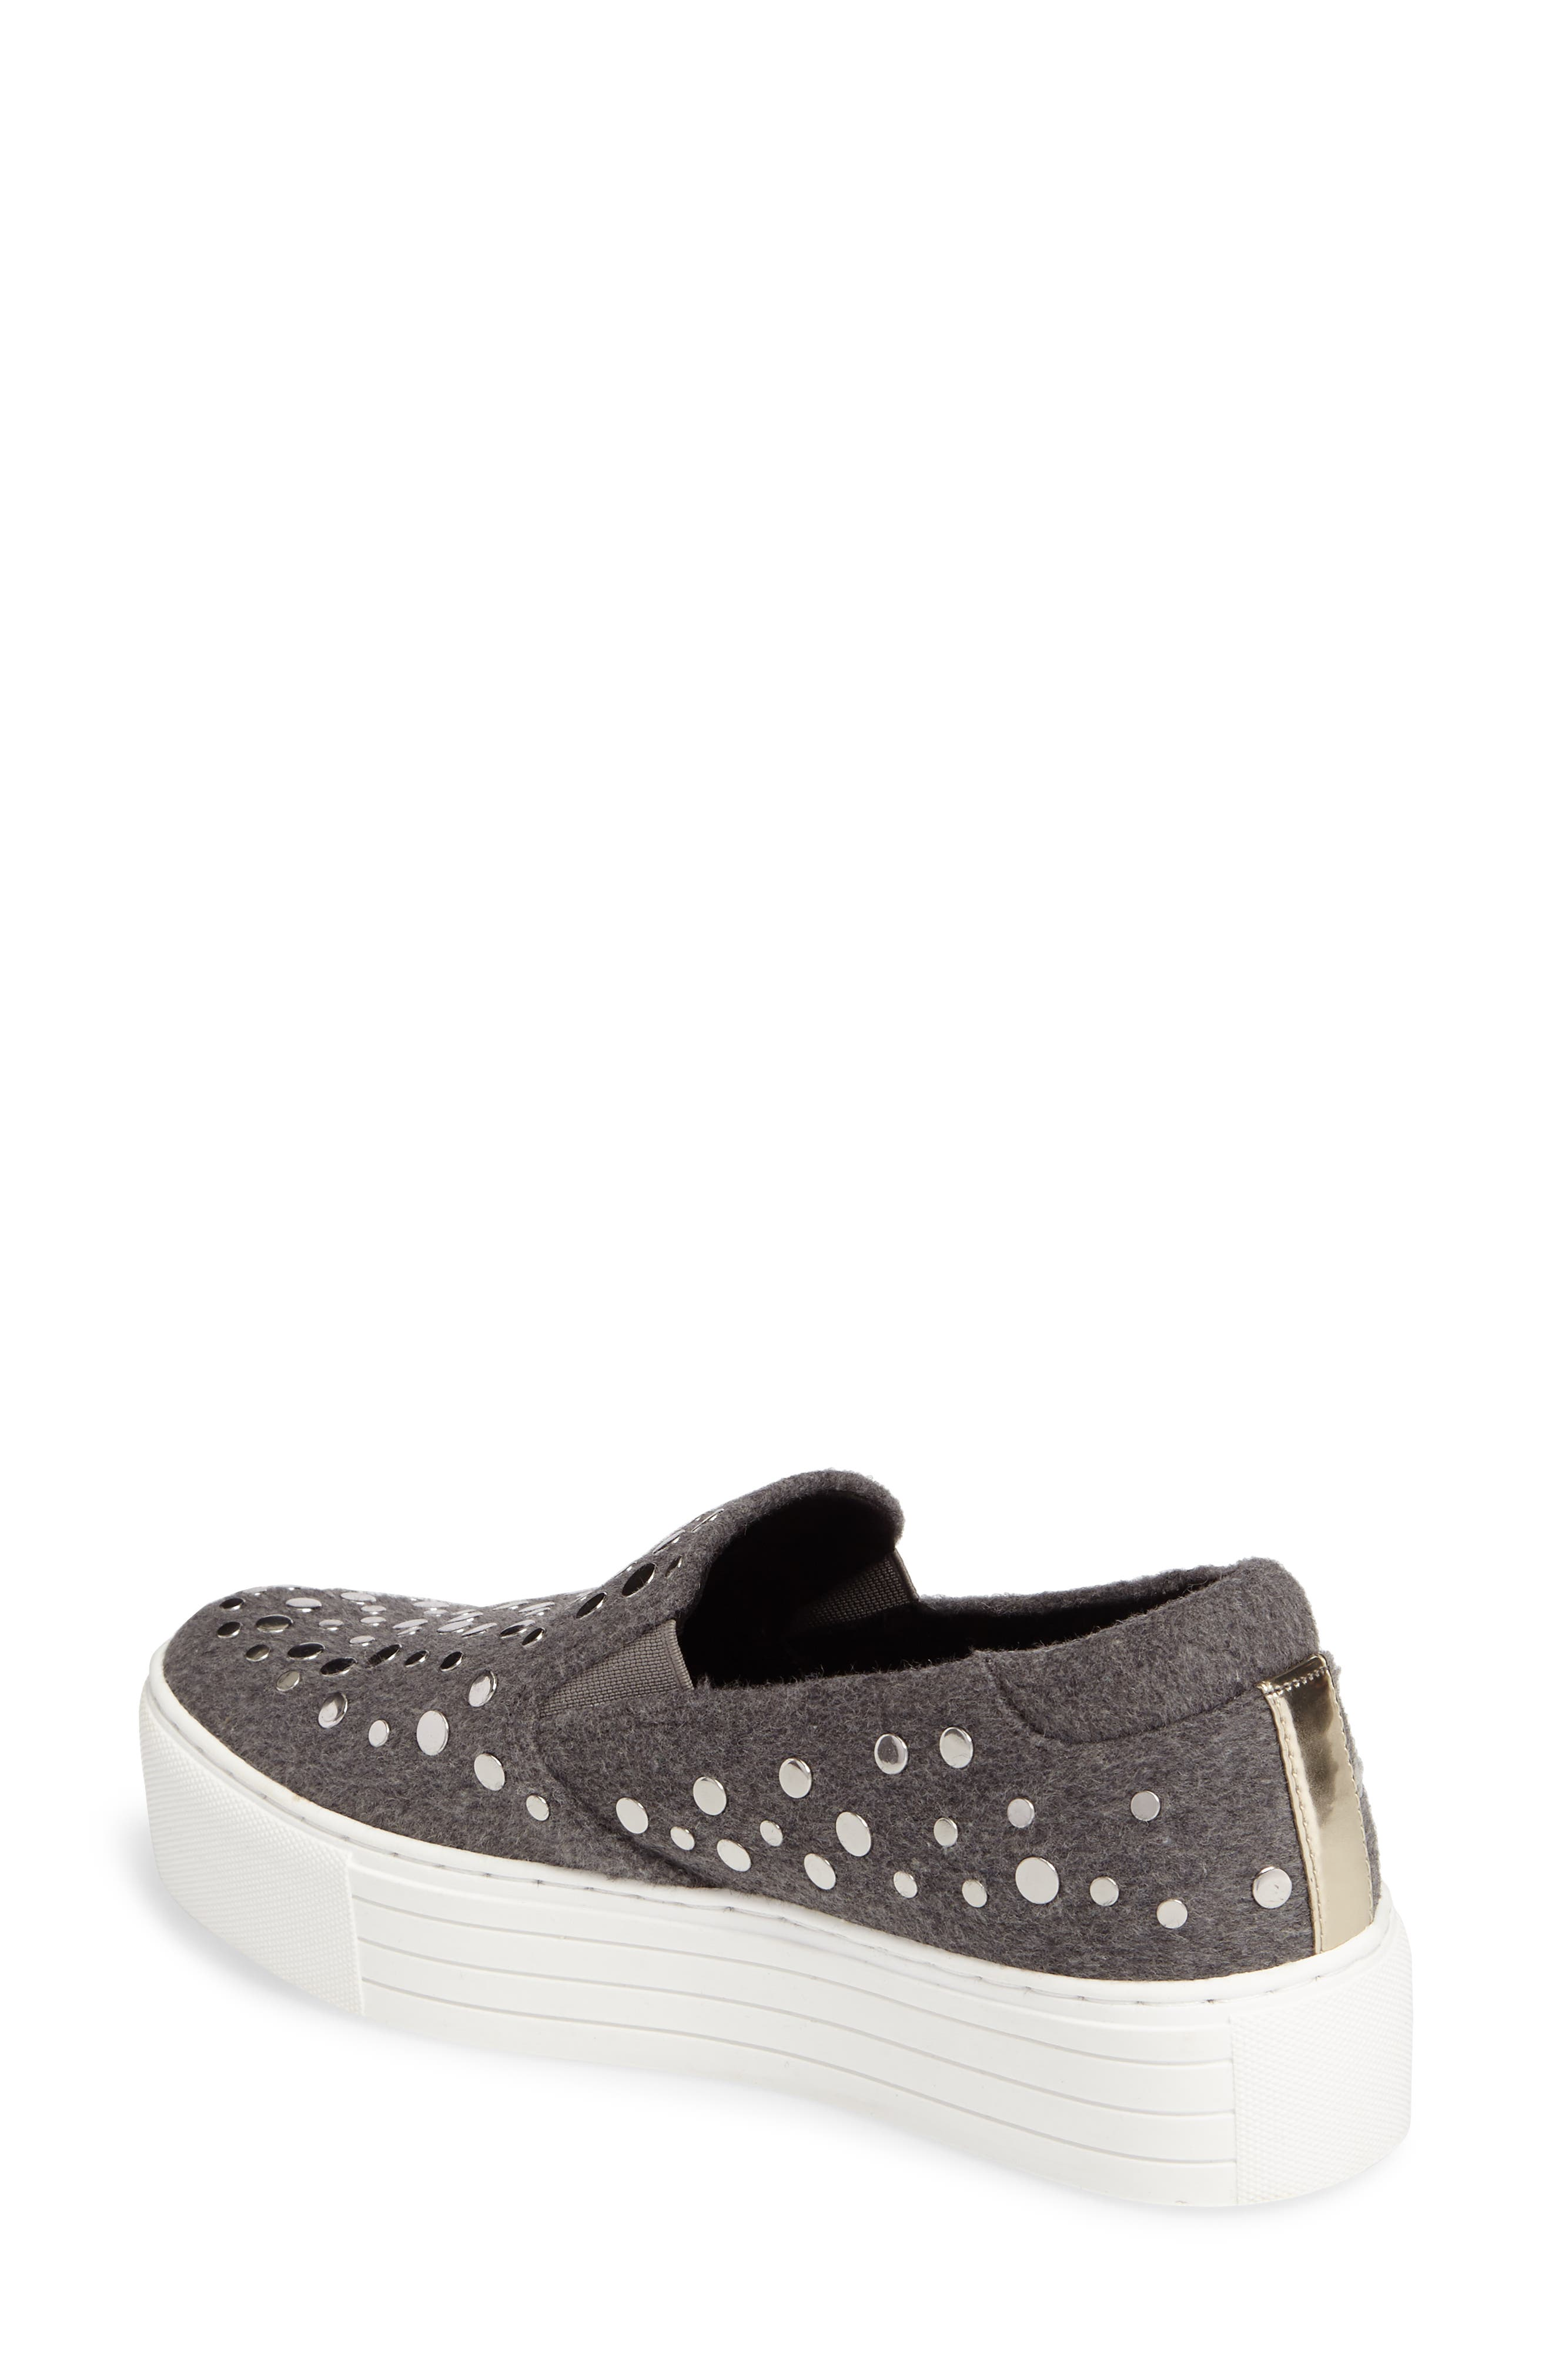 Jeyda Slip-On Sneaker,                             Alternate thumbnail 4, color,                             Grey Felt Fabric